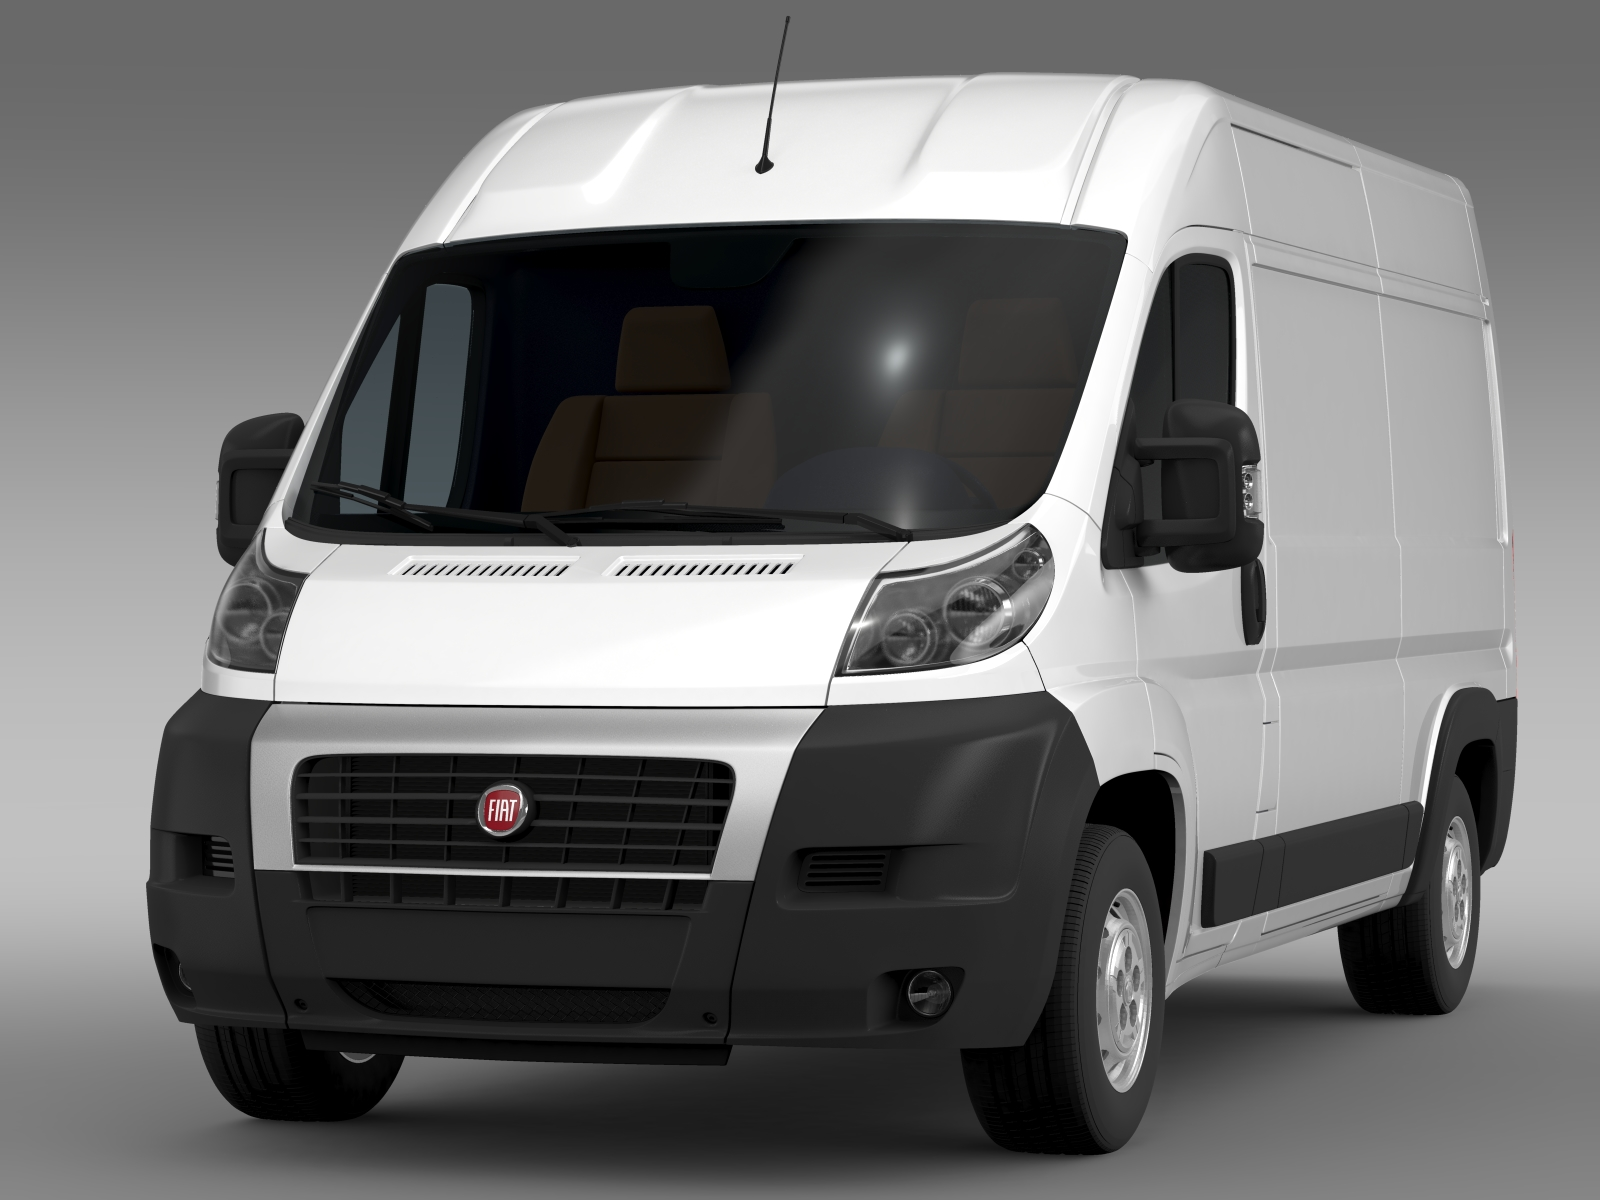 fiat ducato van l2h2 2006 2014 3d model buy fiat ducato. Black Bedroom Furniture Sets. Home Design Ideas